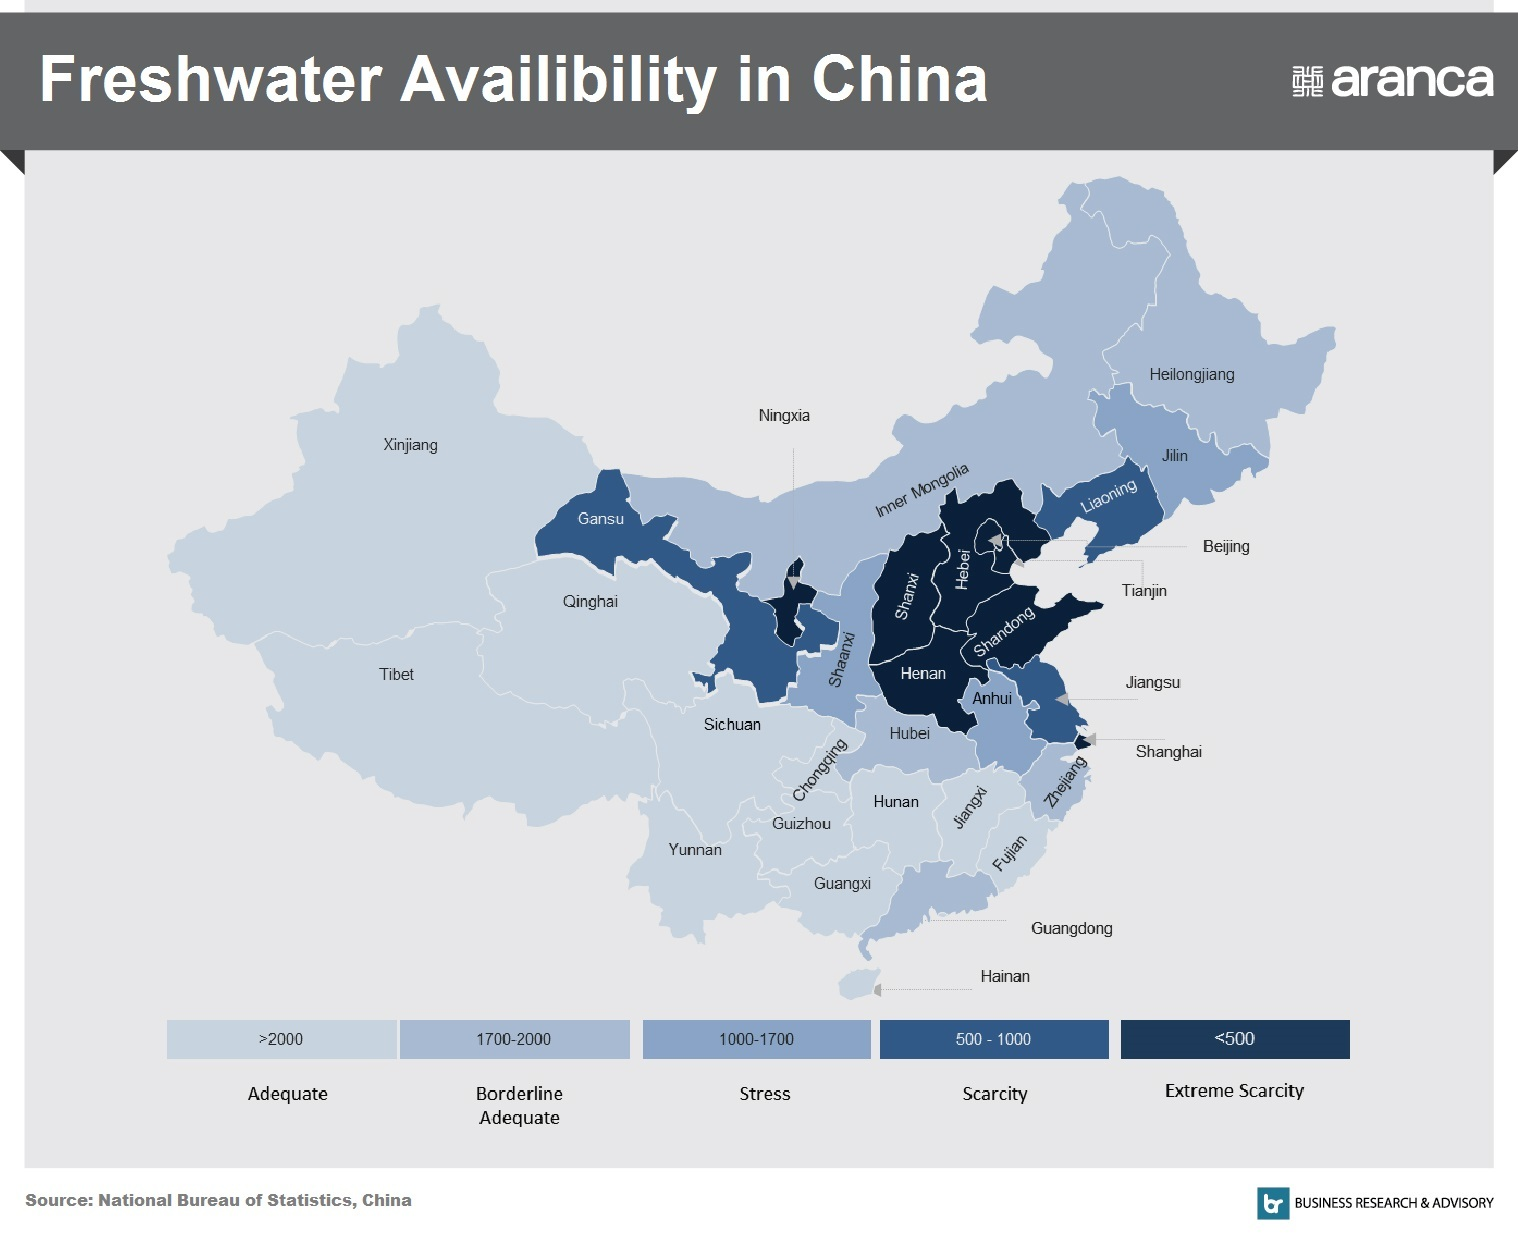 Freshwater Availability in China